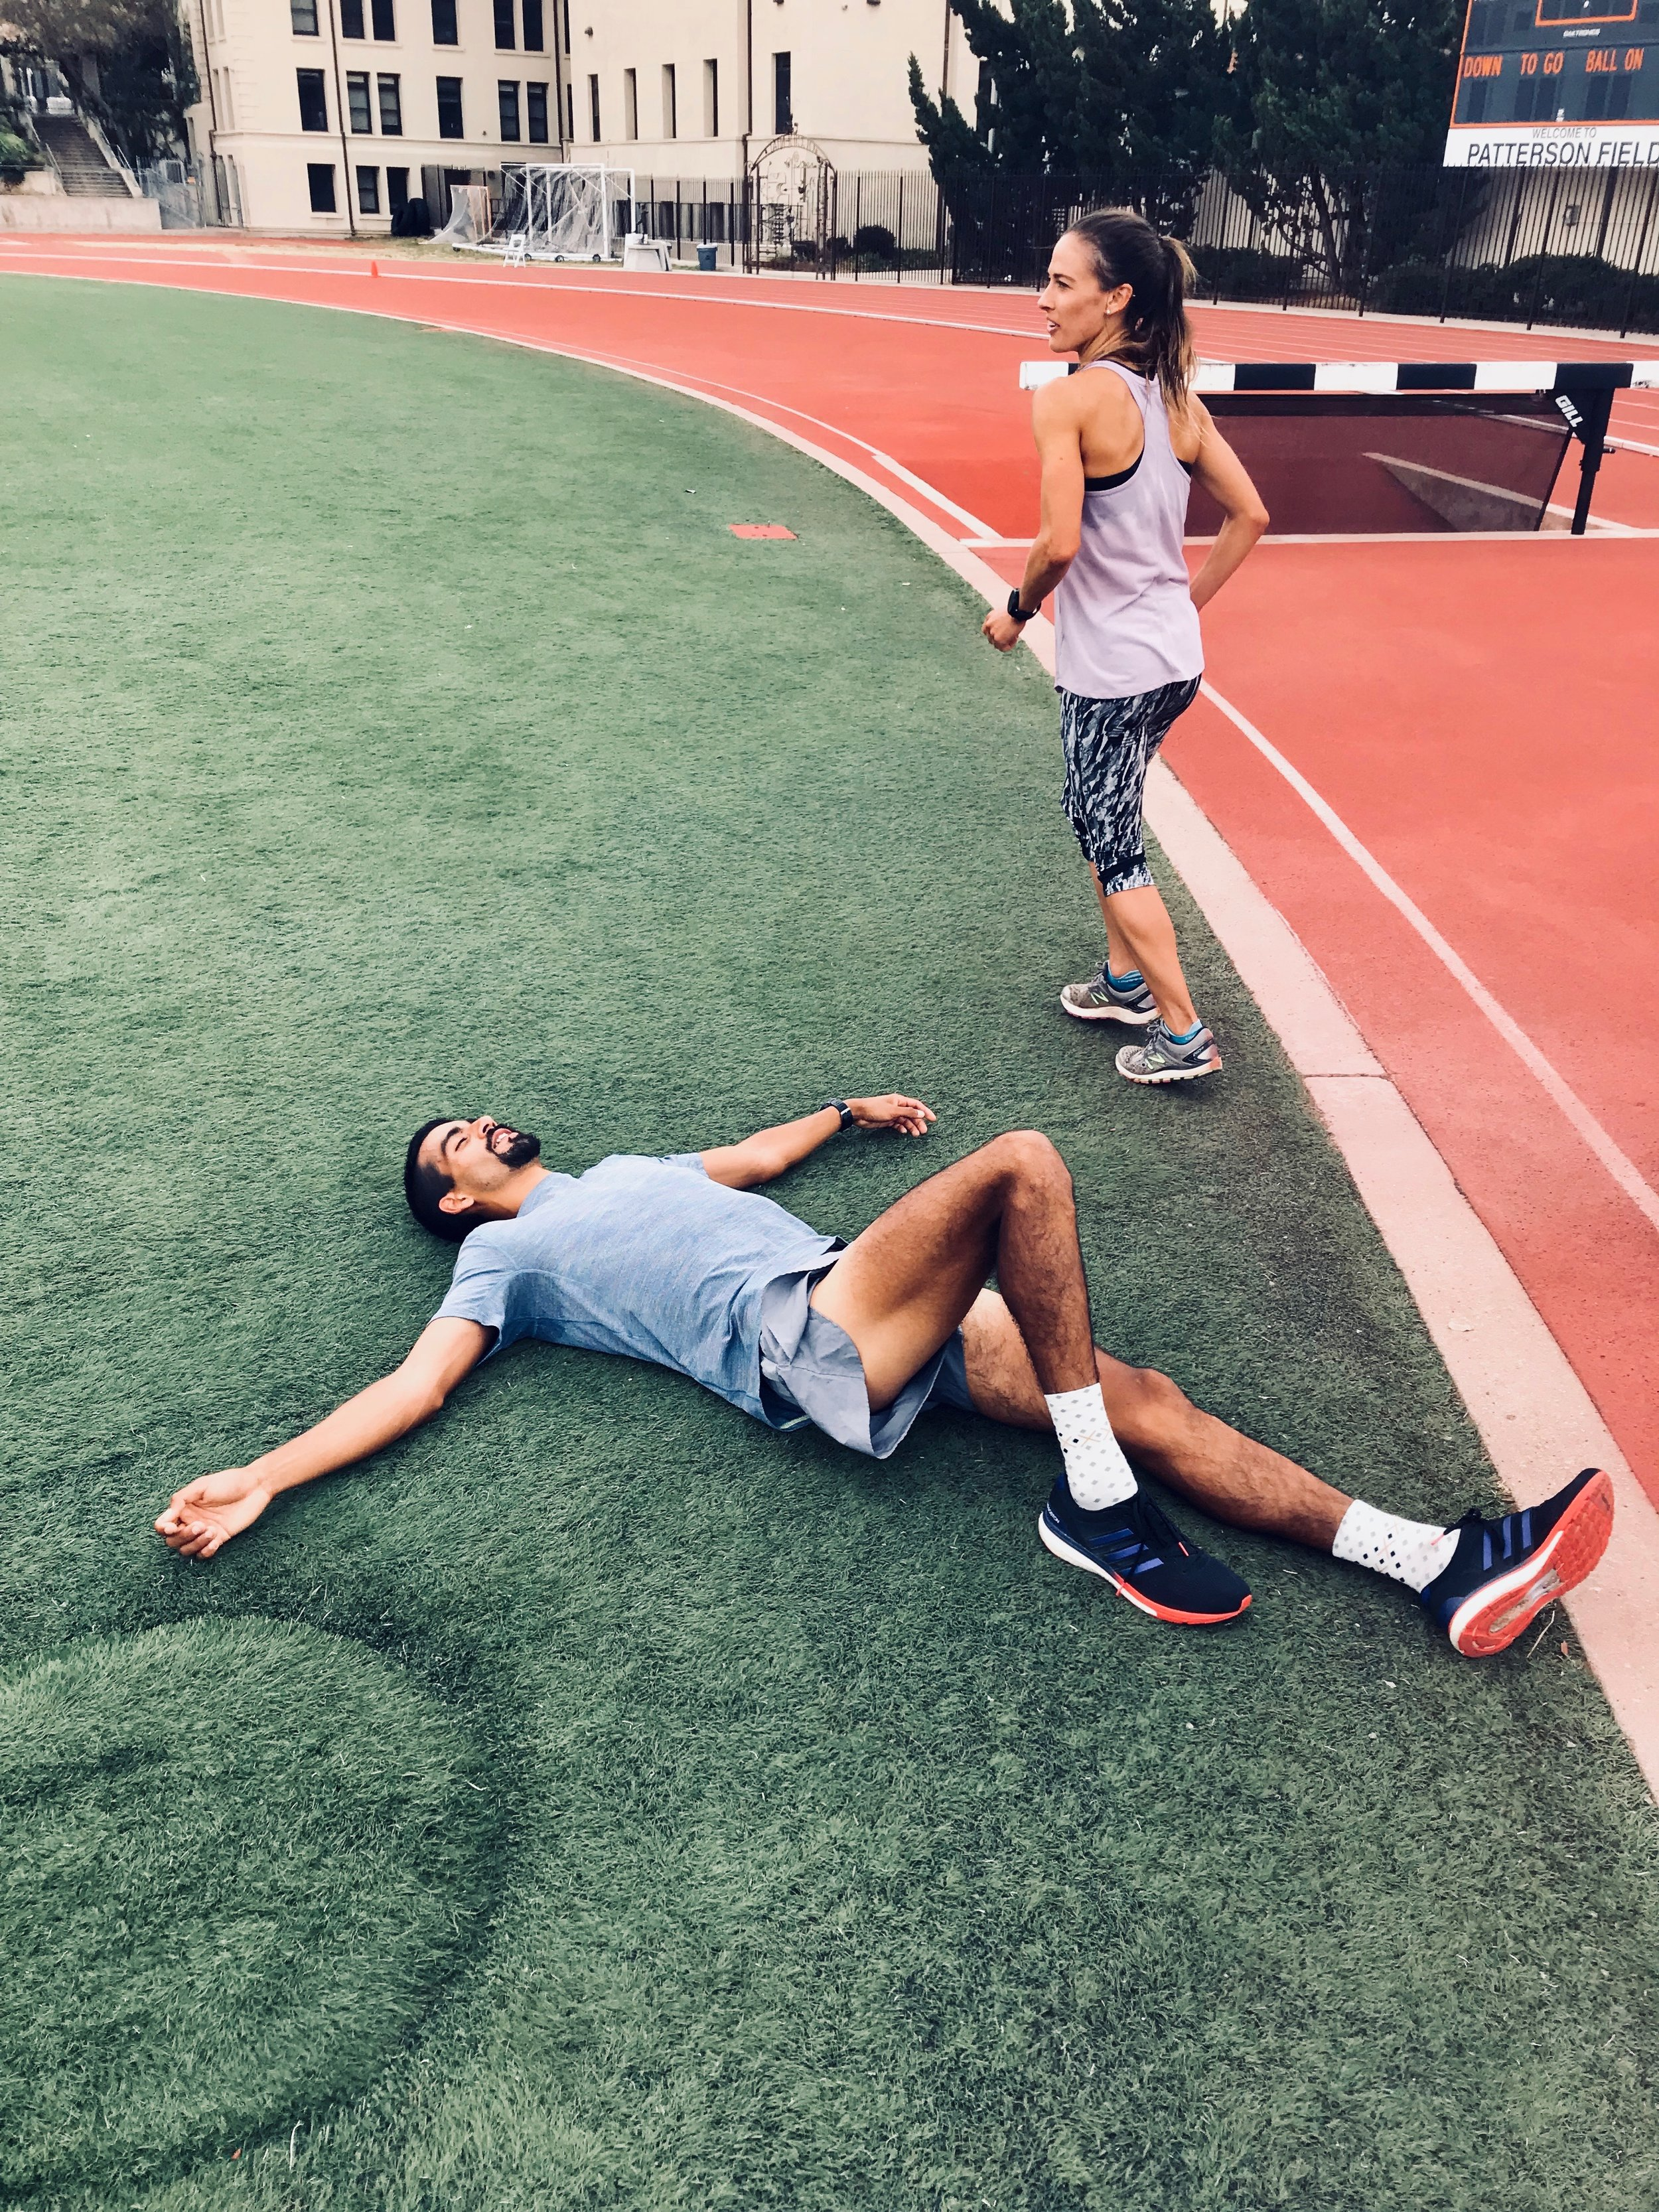 The post workout realities of a demanding speed endurance session.